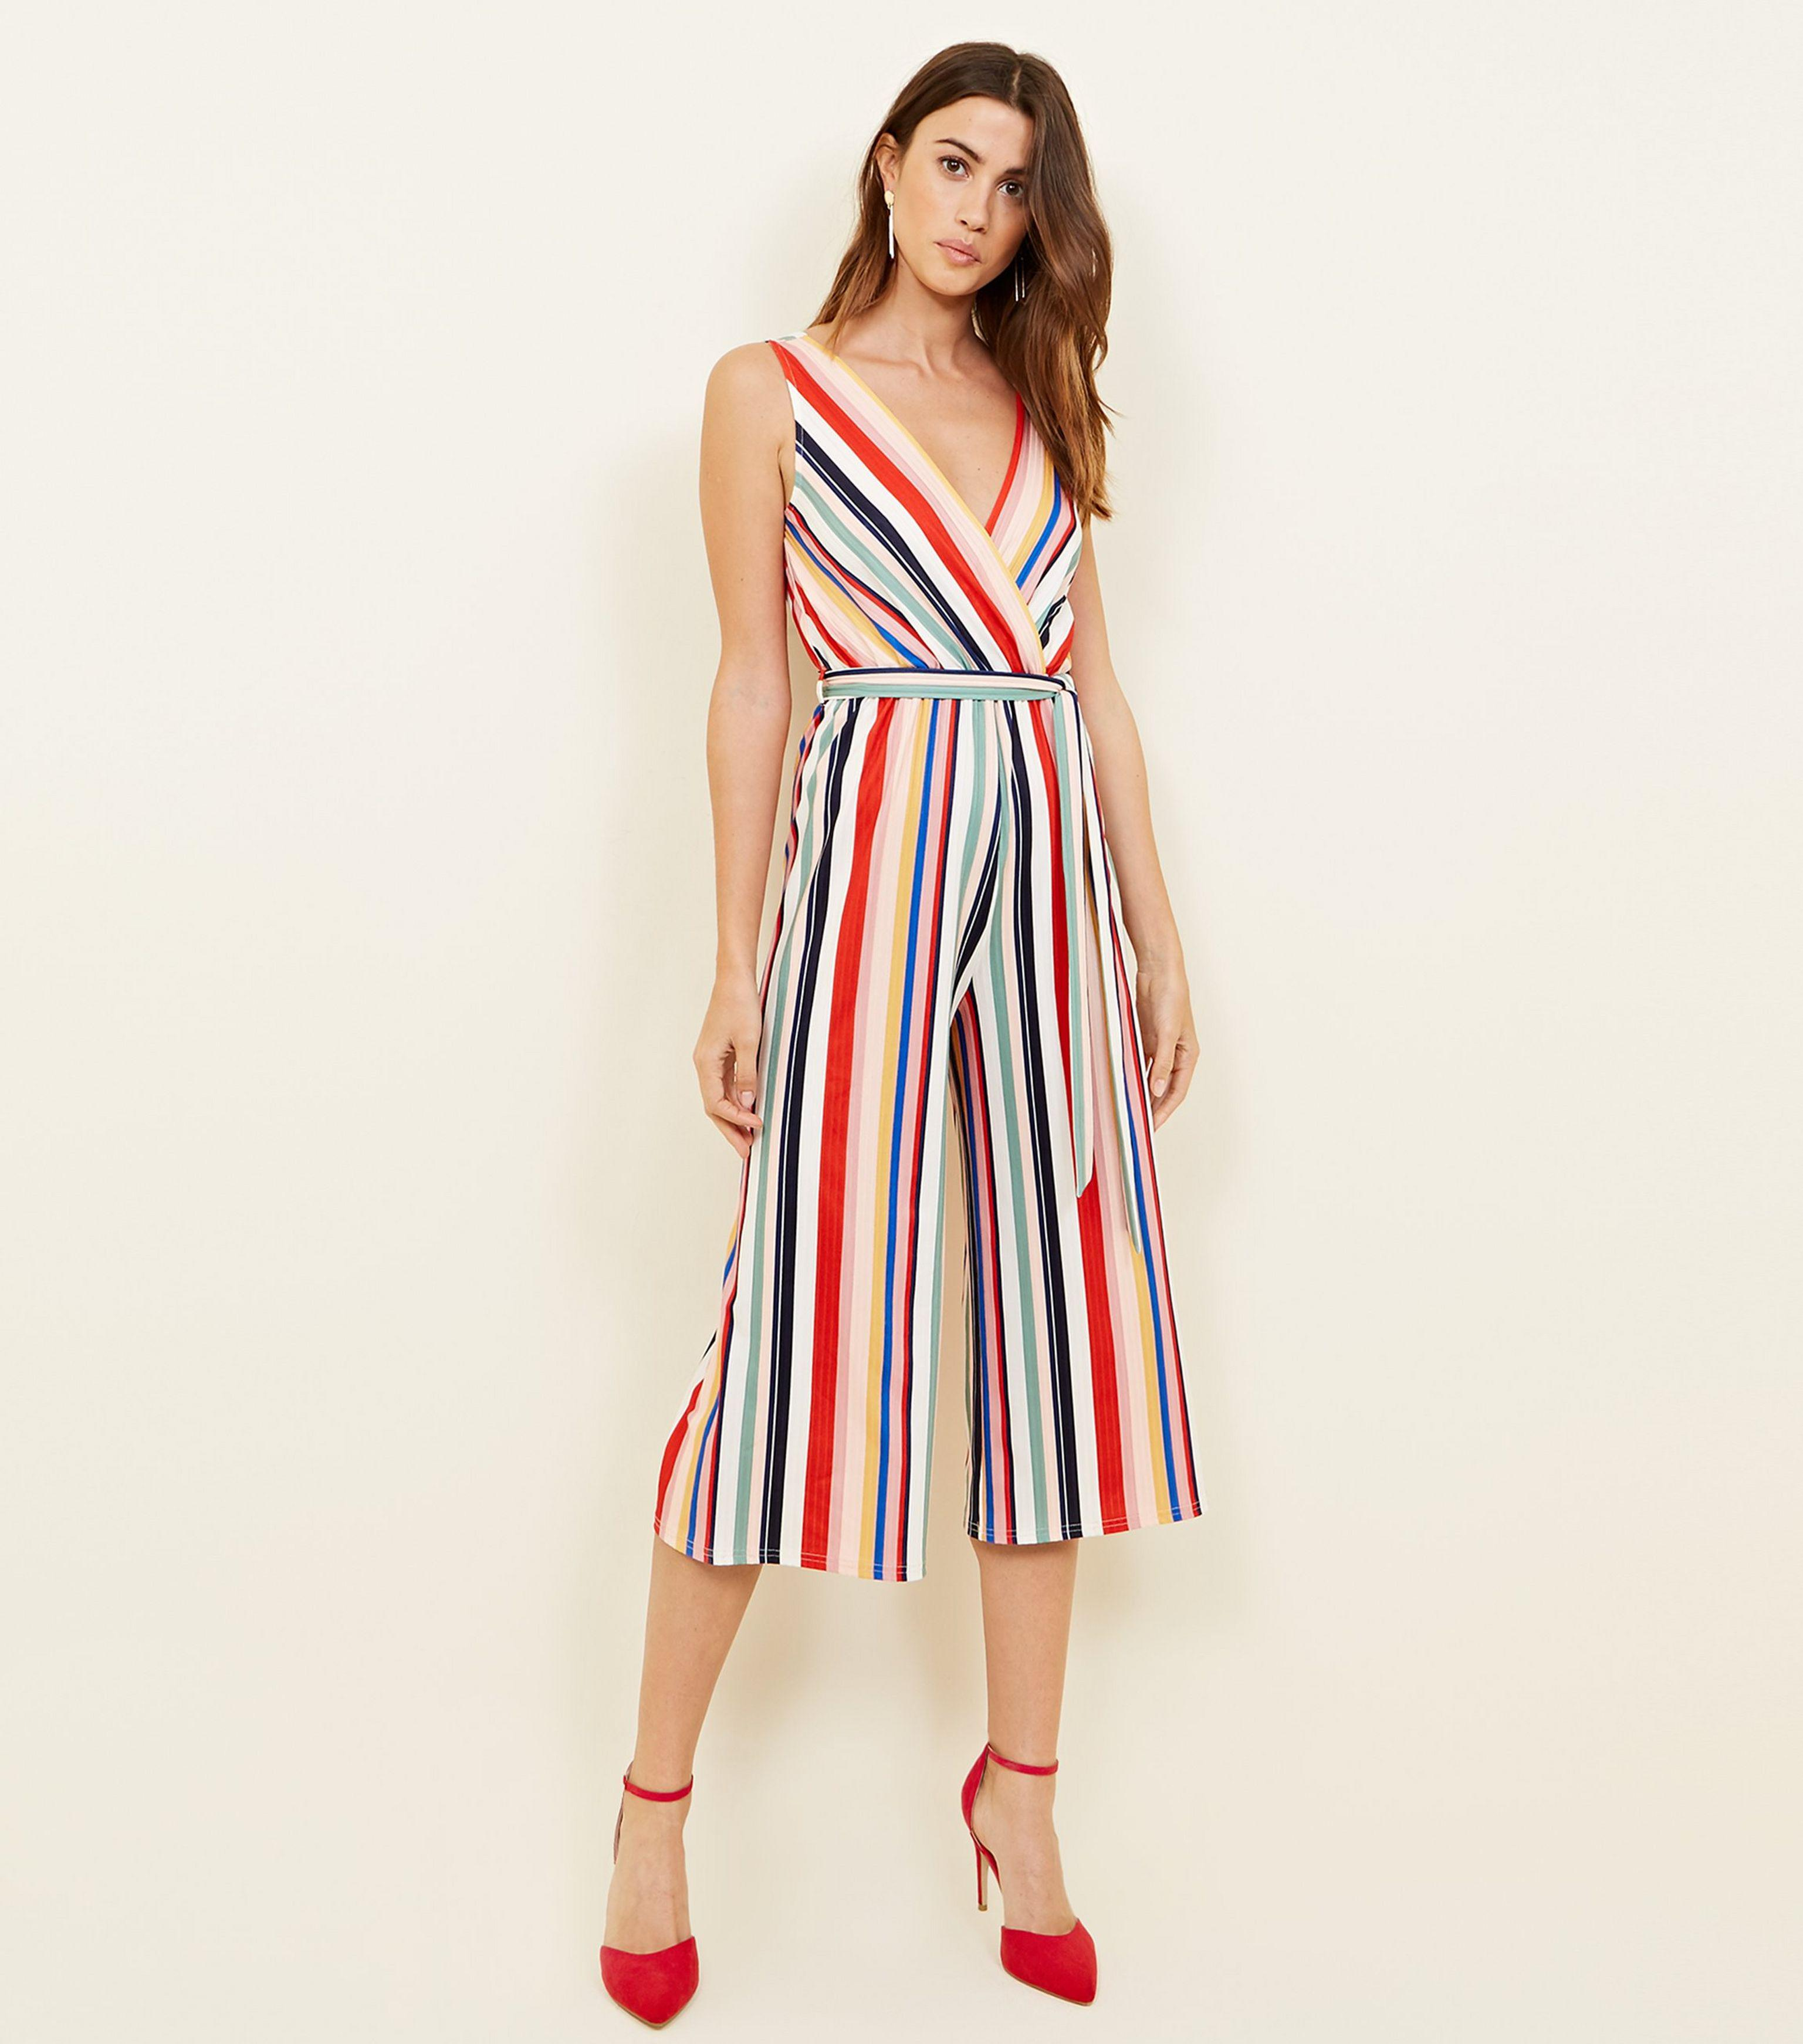 5050170a8766 New Look Rainbow Stripe Culotte Wrap Jumpsuit in Red - Lyst